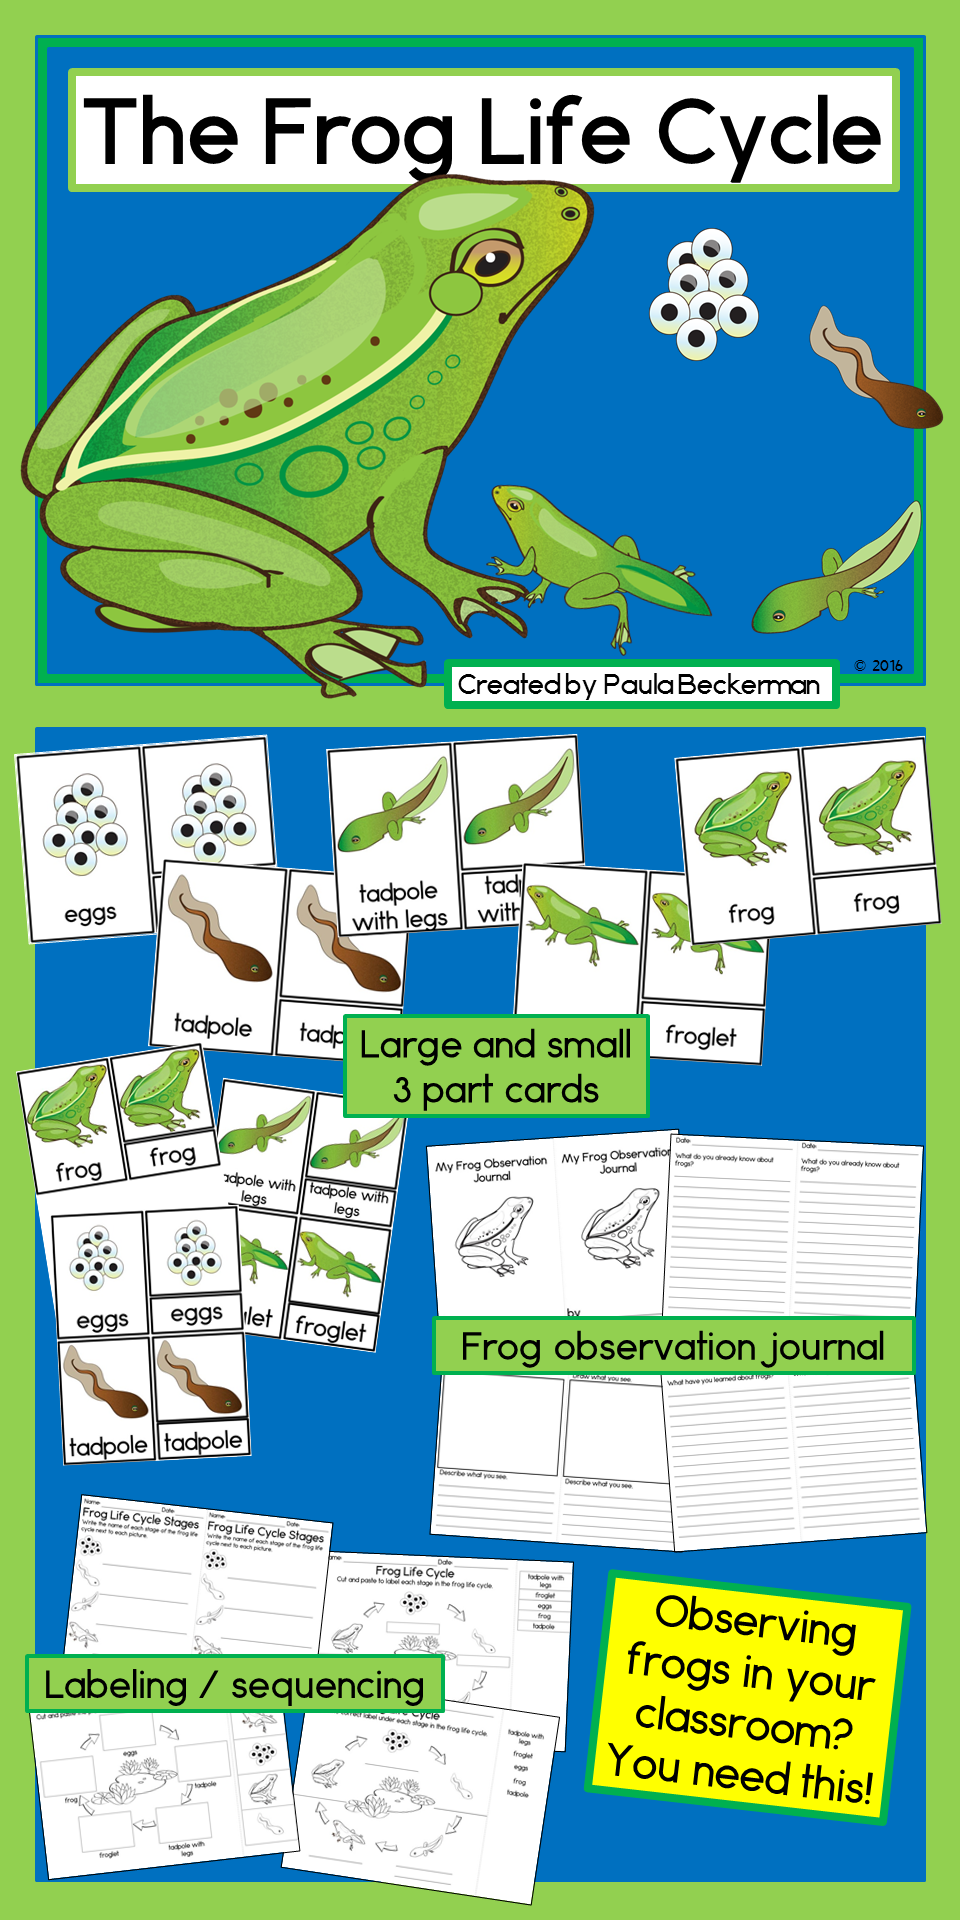 Frog Life Cycle Activities With 3 Part Cards Journal And